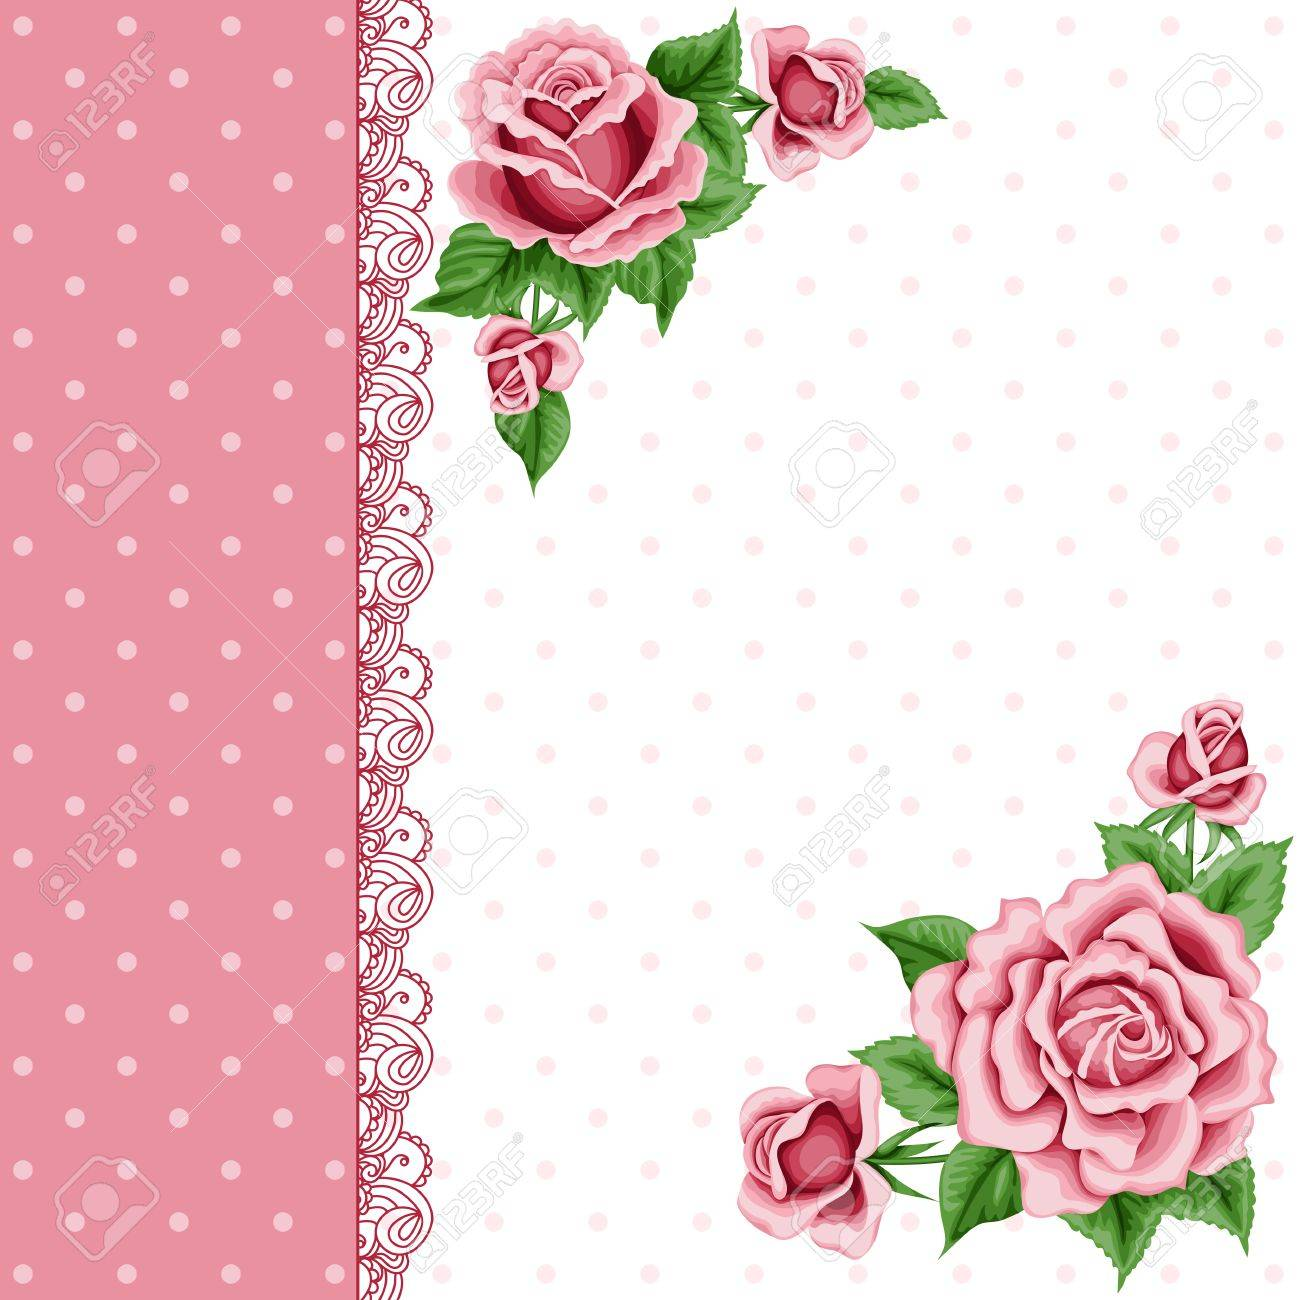 Vintage Flower Card With Colorful Roses And Lace Border Shabby Chic Vector Illustration Stock